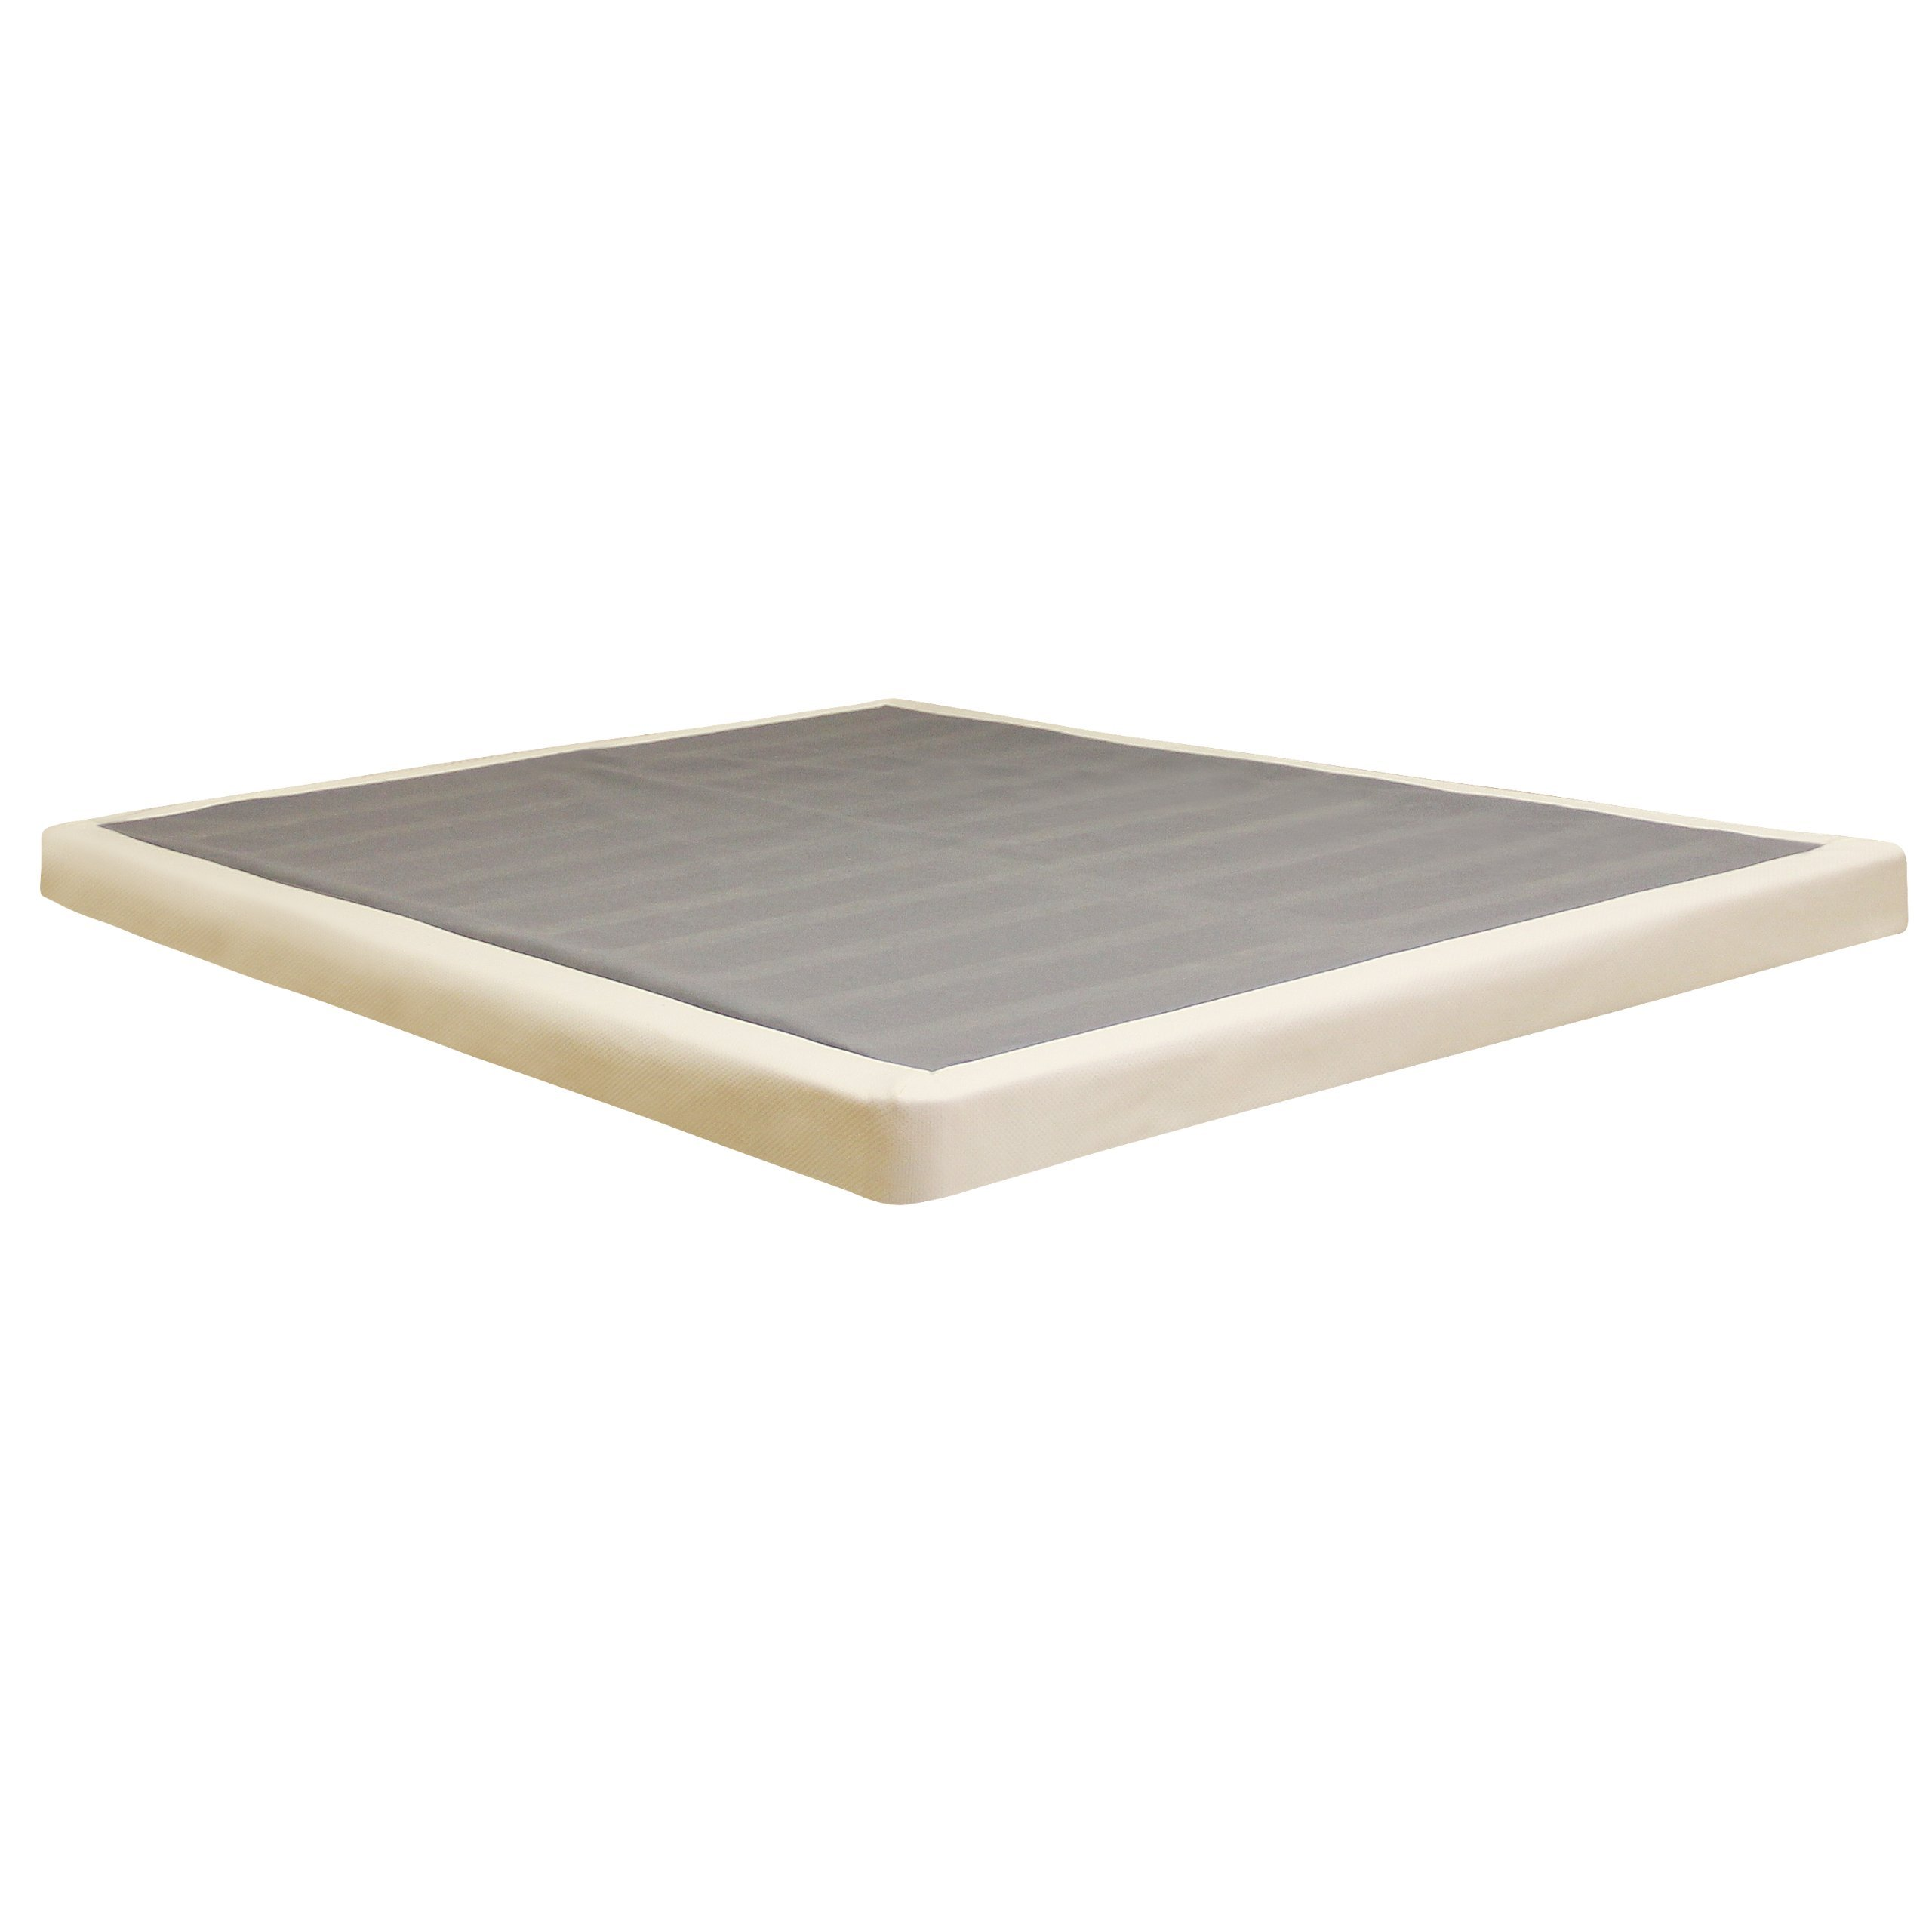 Lifetime sleep products 4'' Low Profile Box Spring great for Memory Foam Mattress, Full by Lifetime sleep products